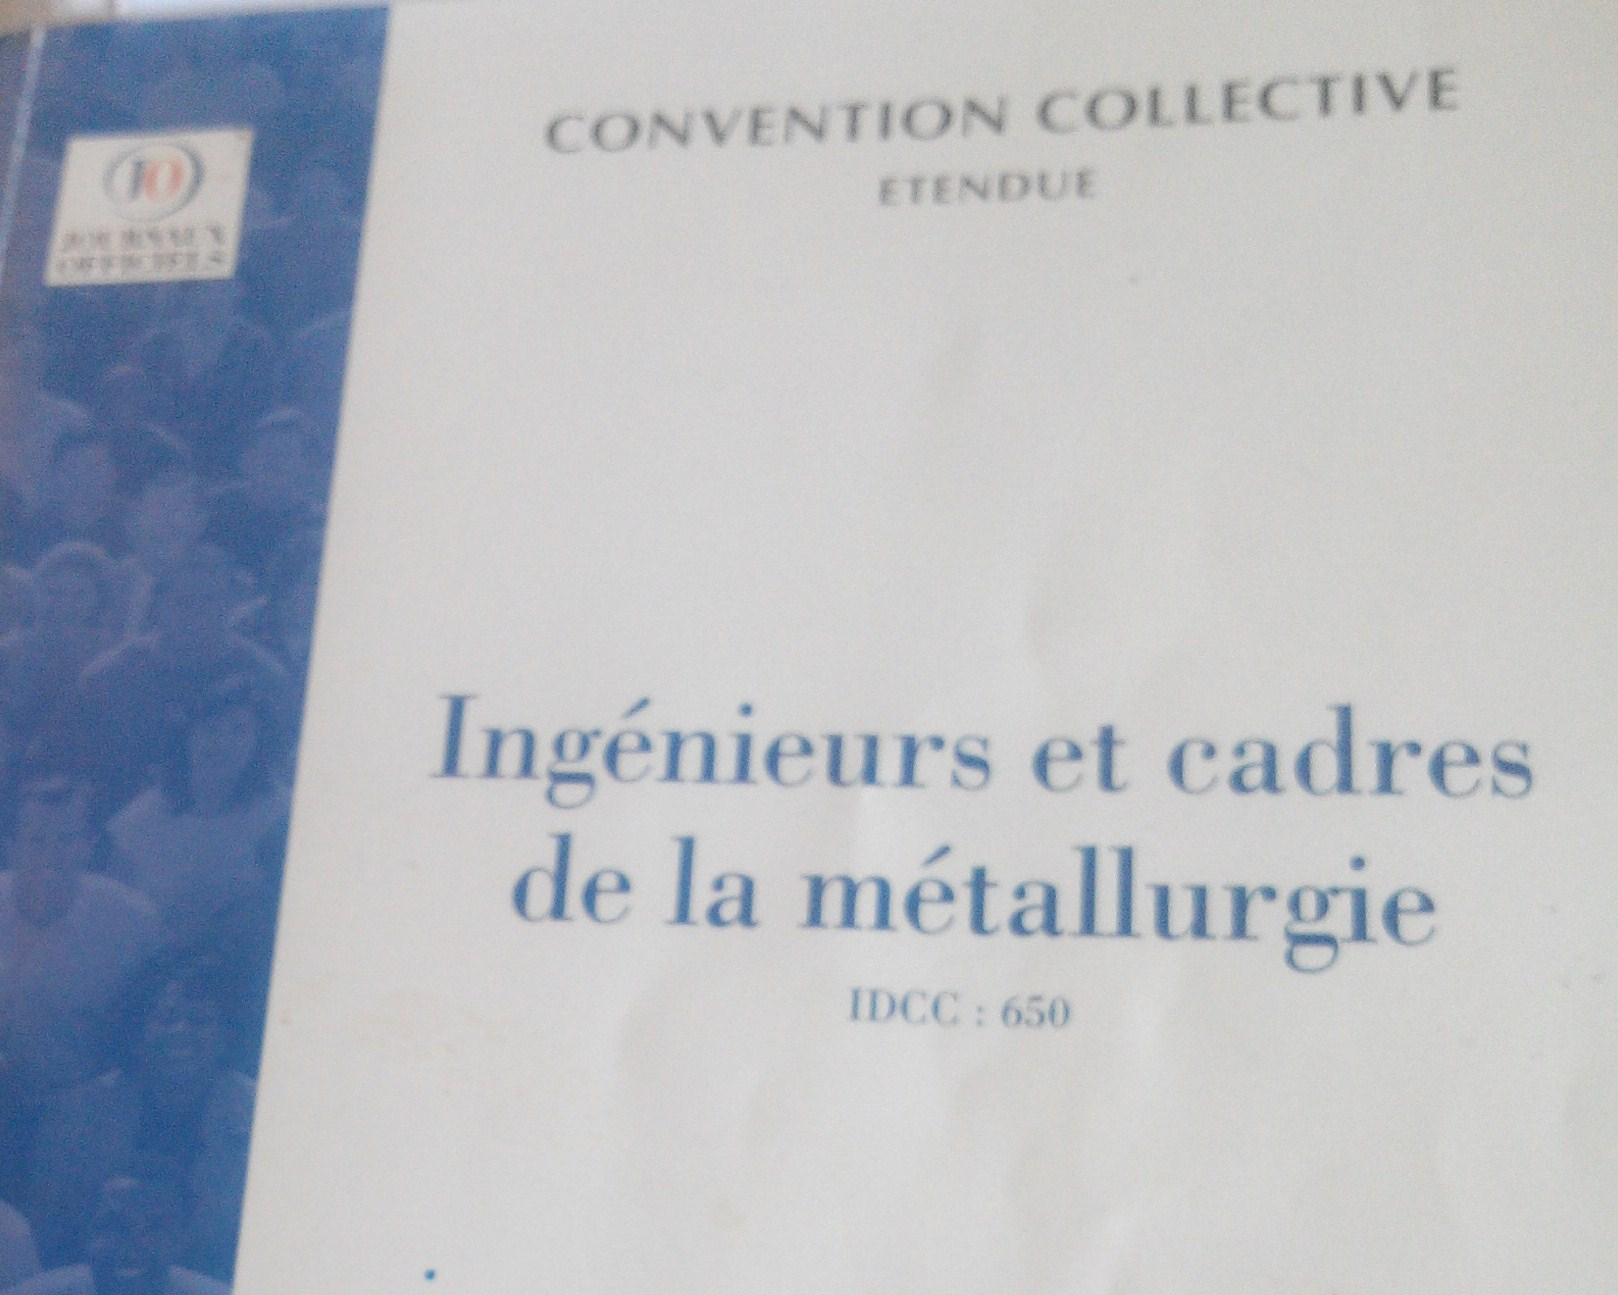 Metallurgie Archives Carole Vercheyre Grard